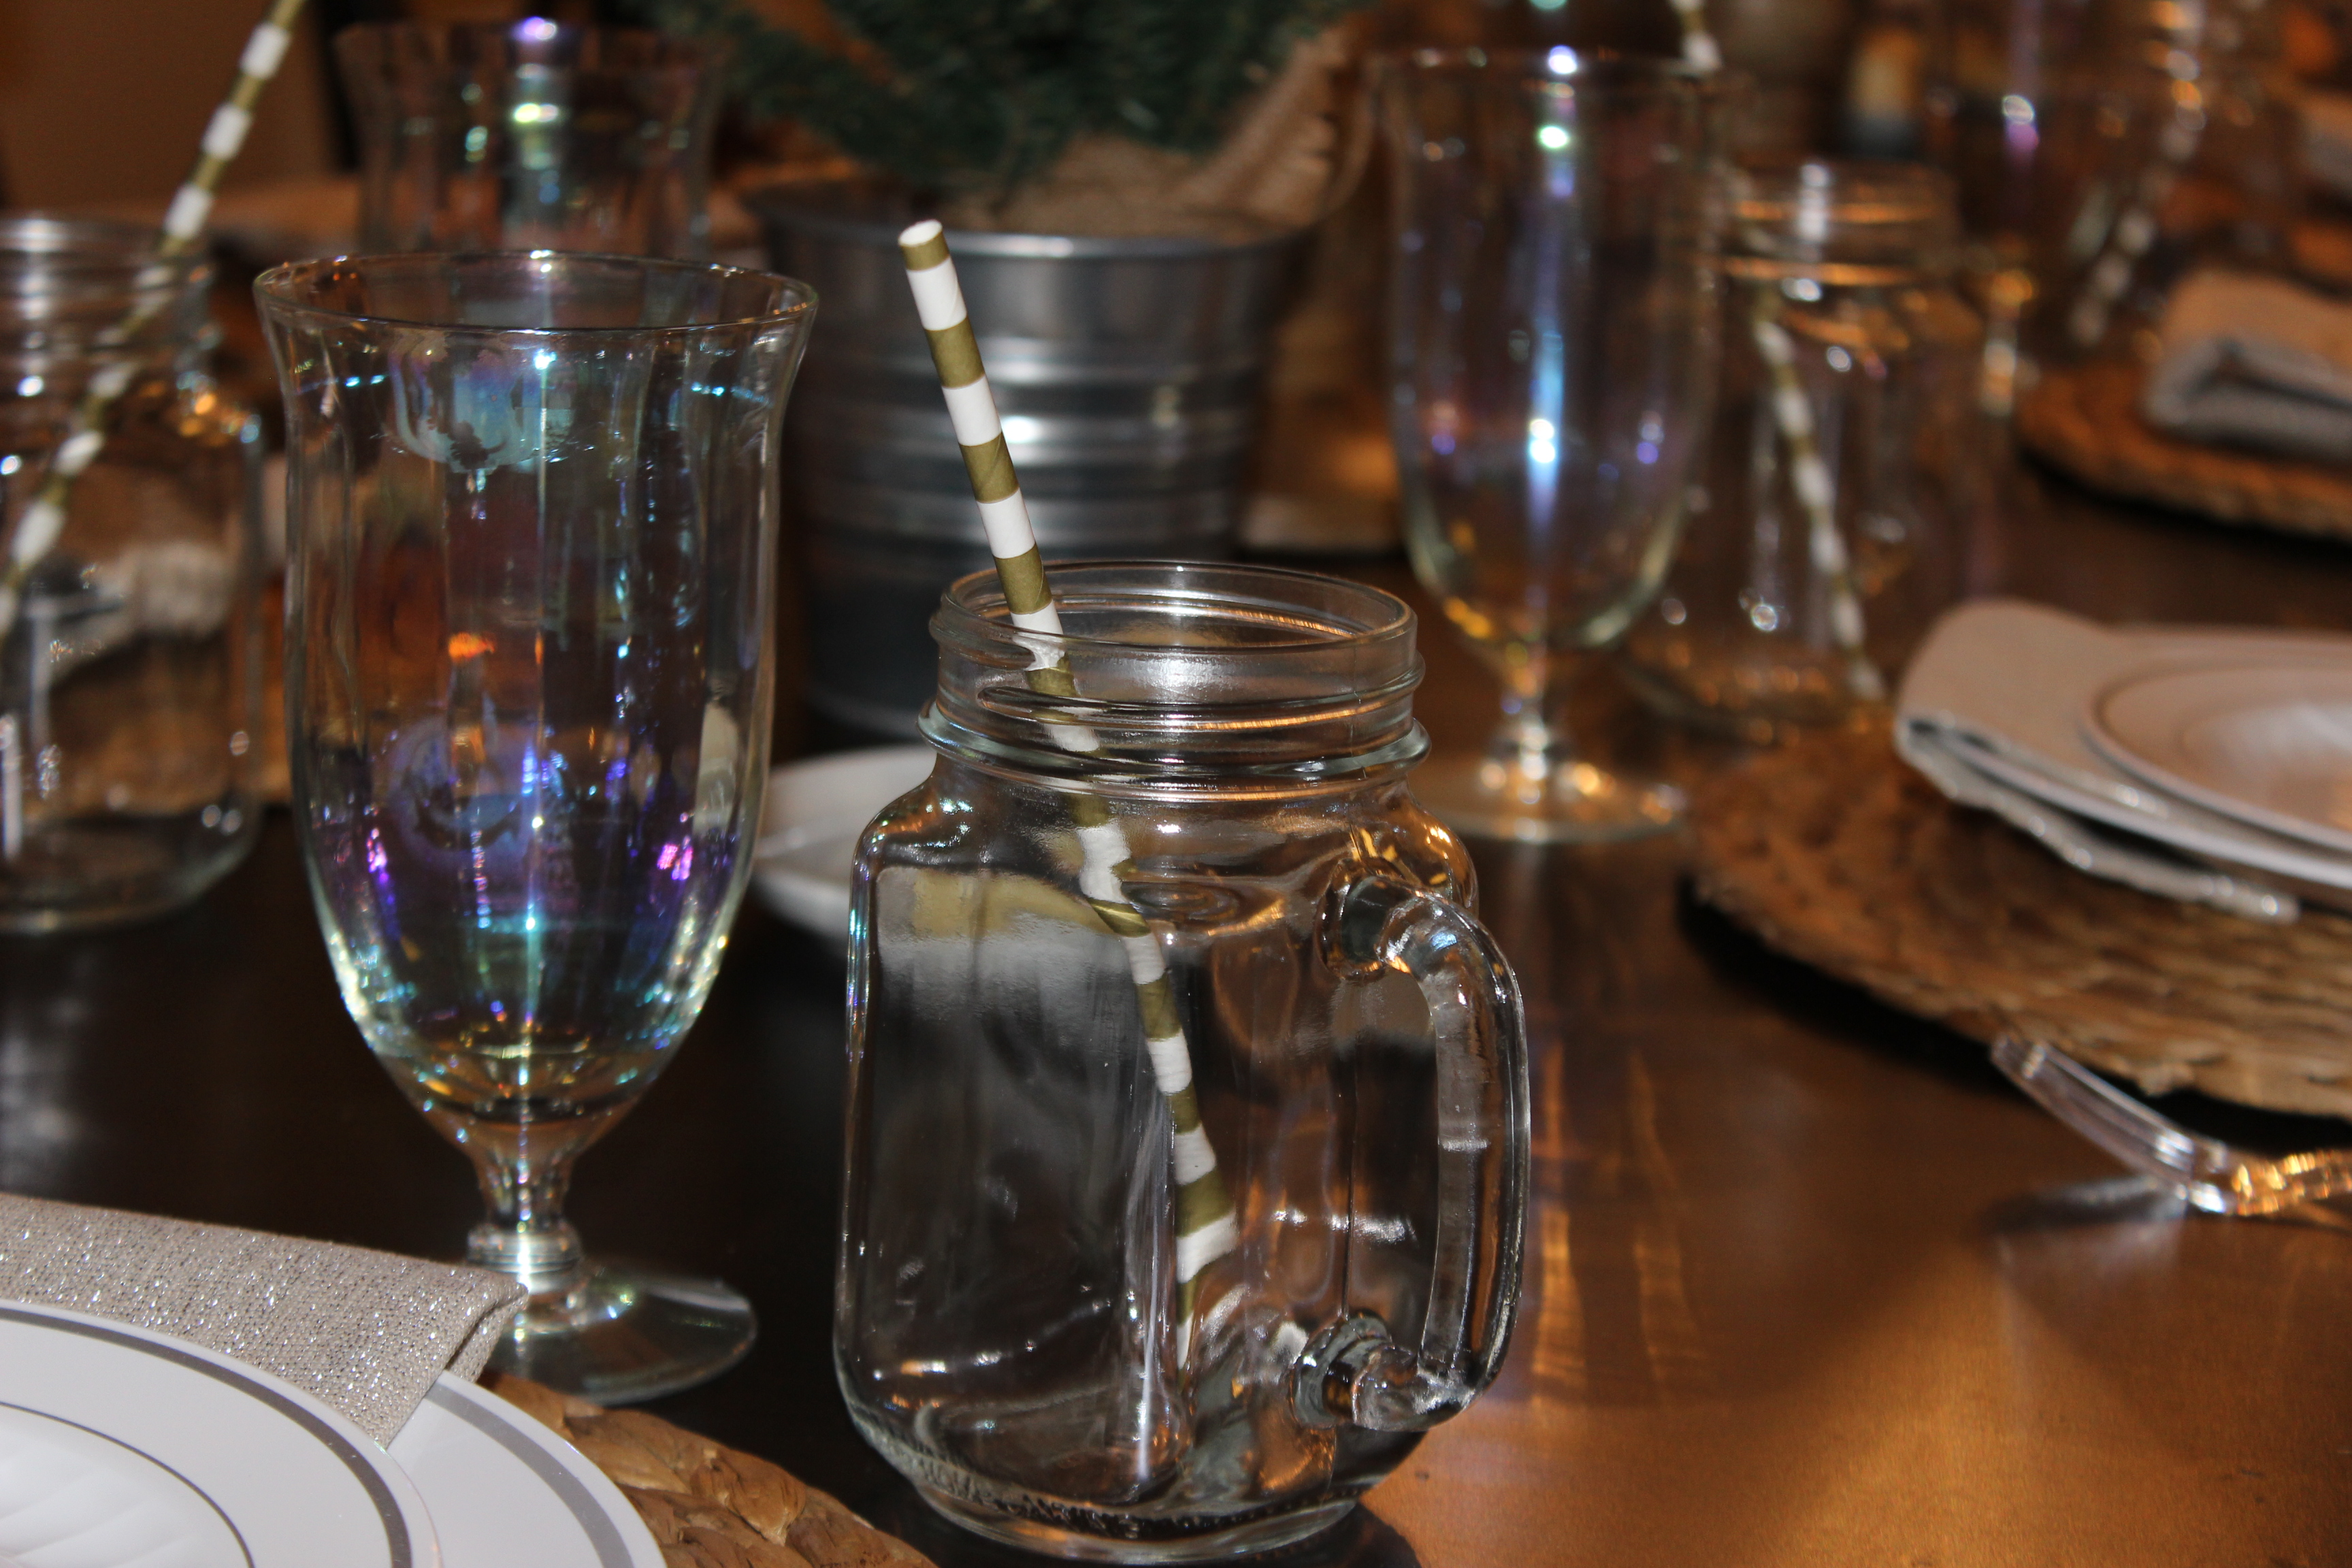 Mix and match glasses for pretty table decor